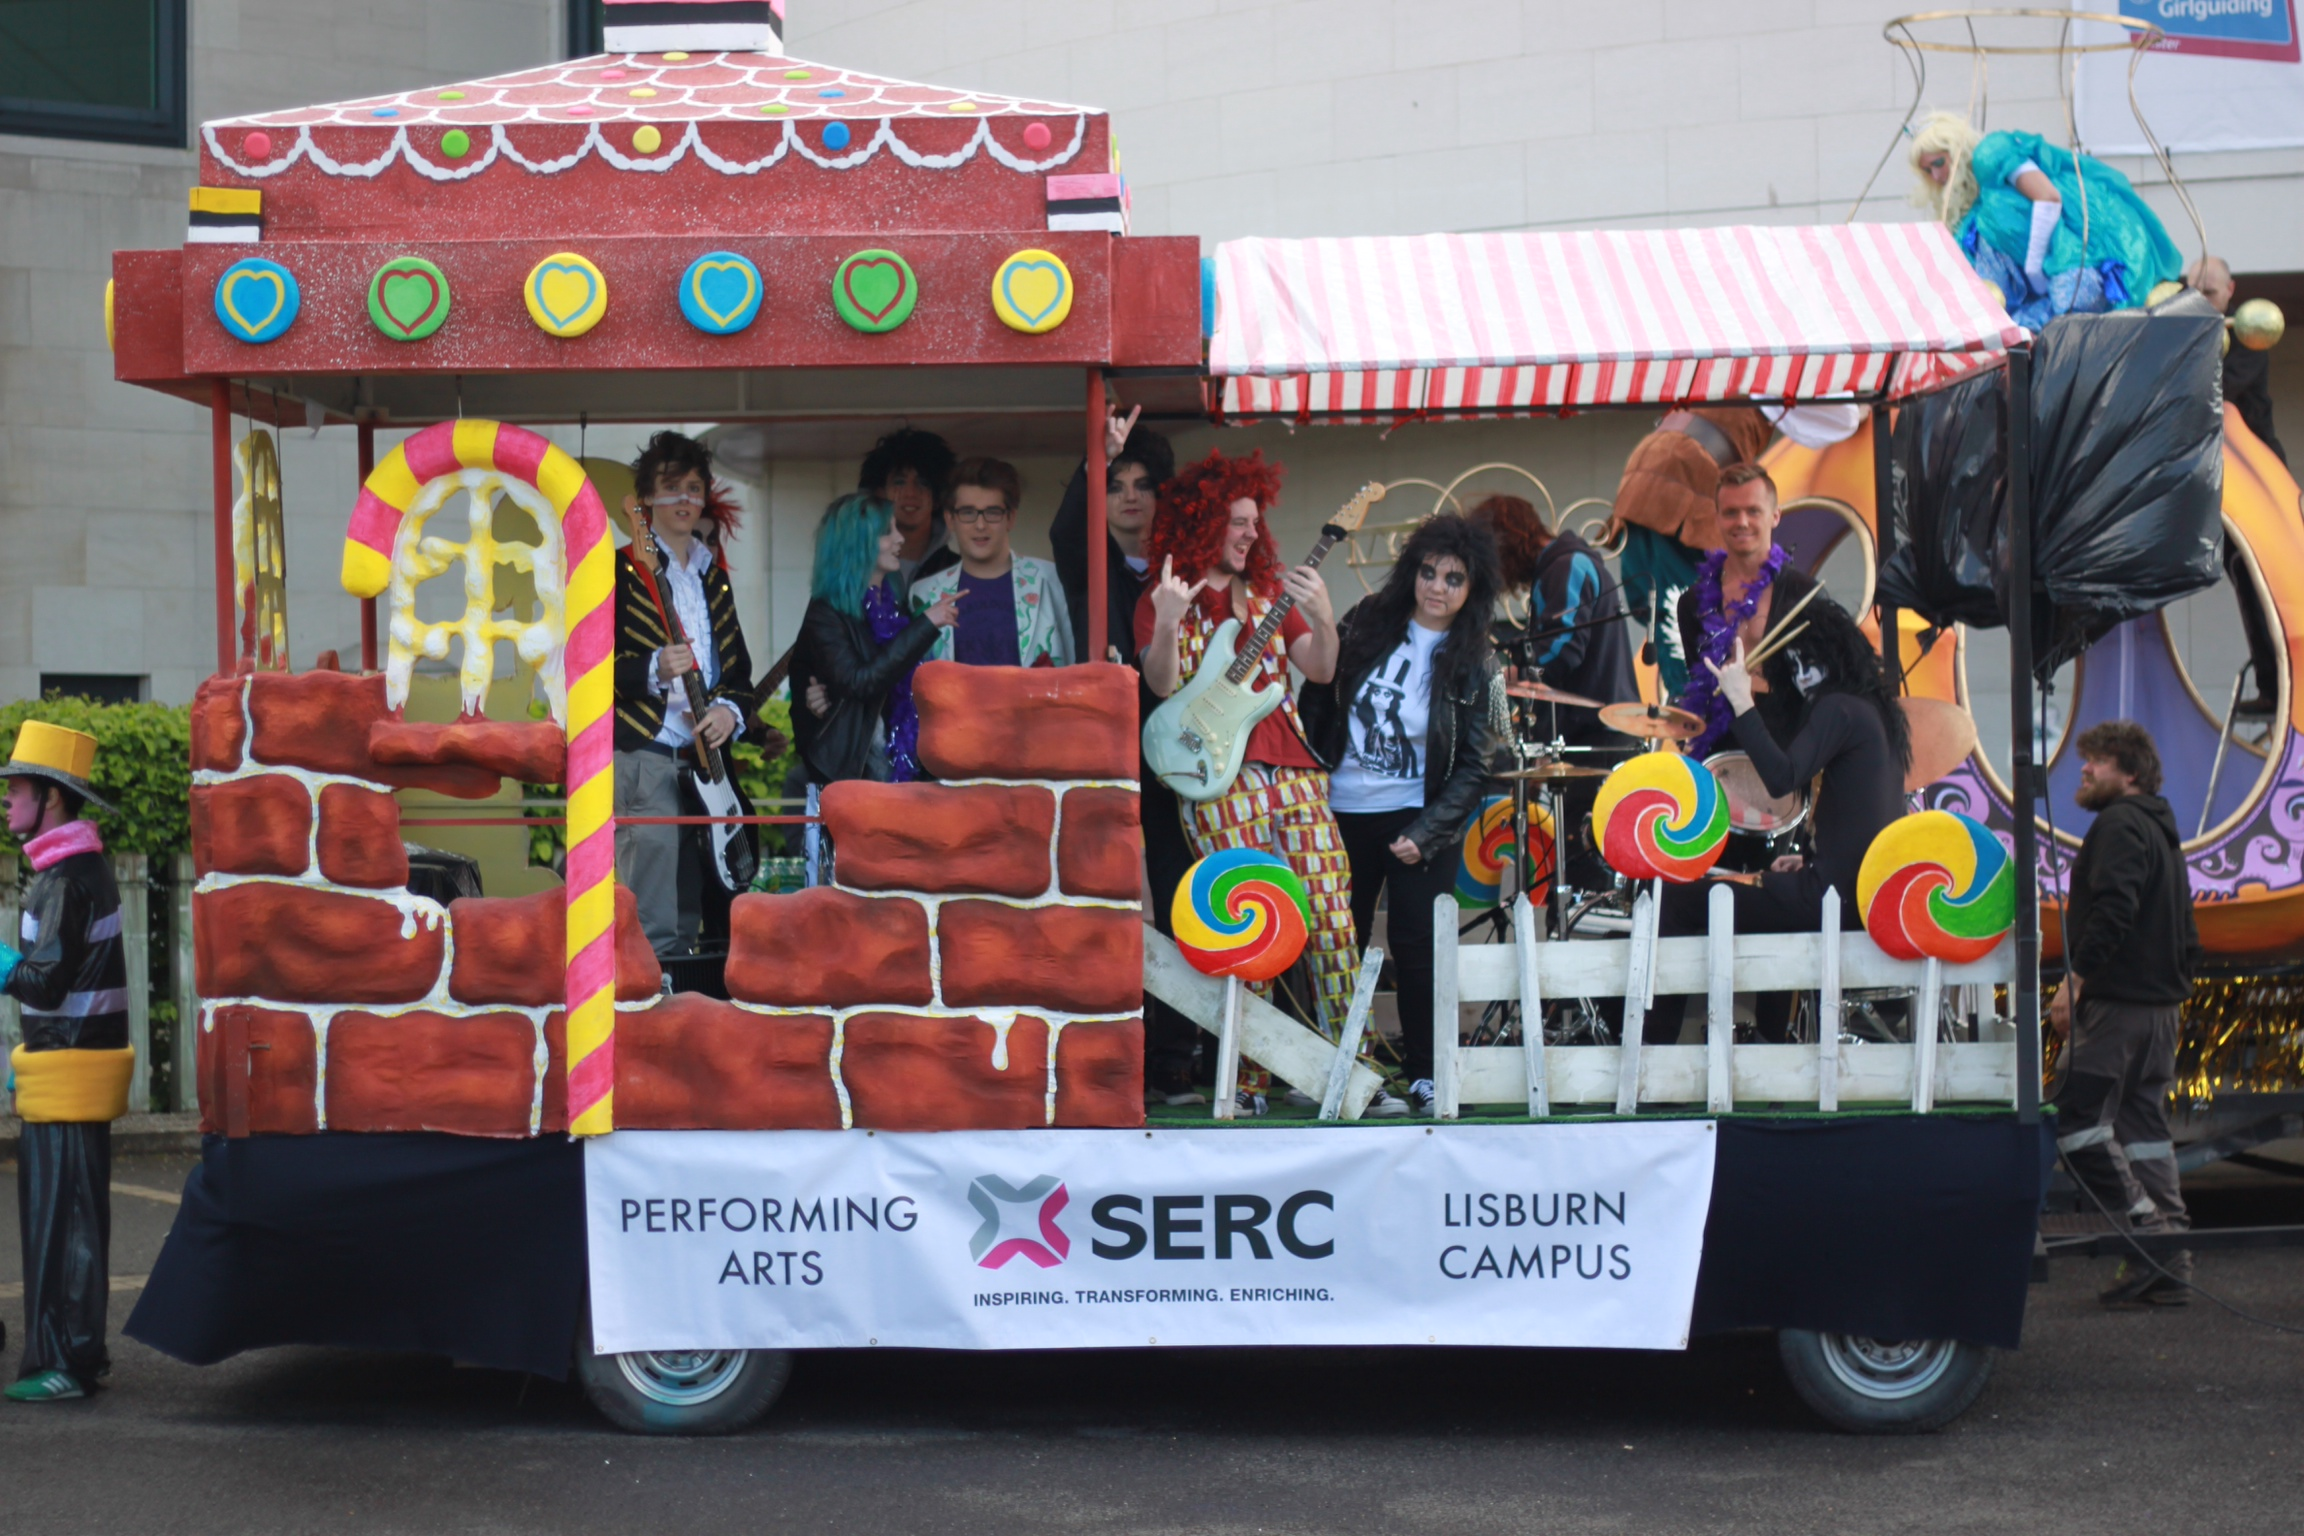 Performing Arts Float